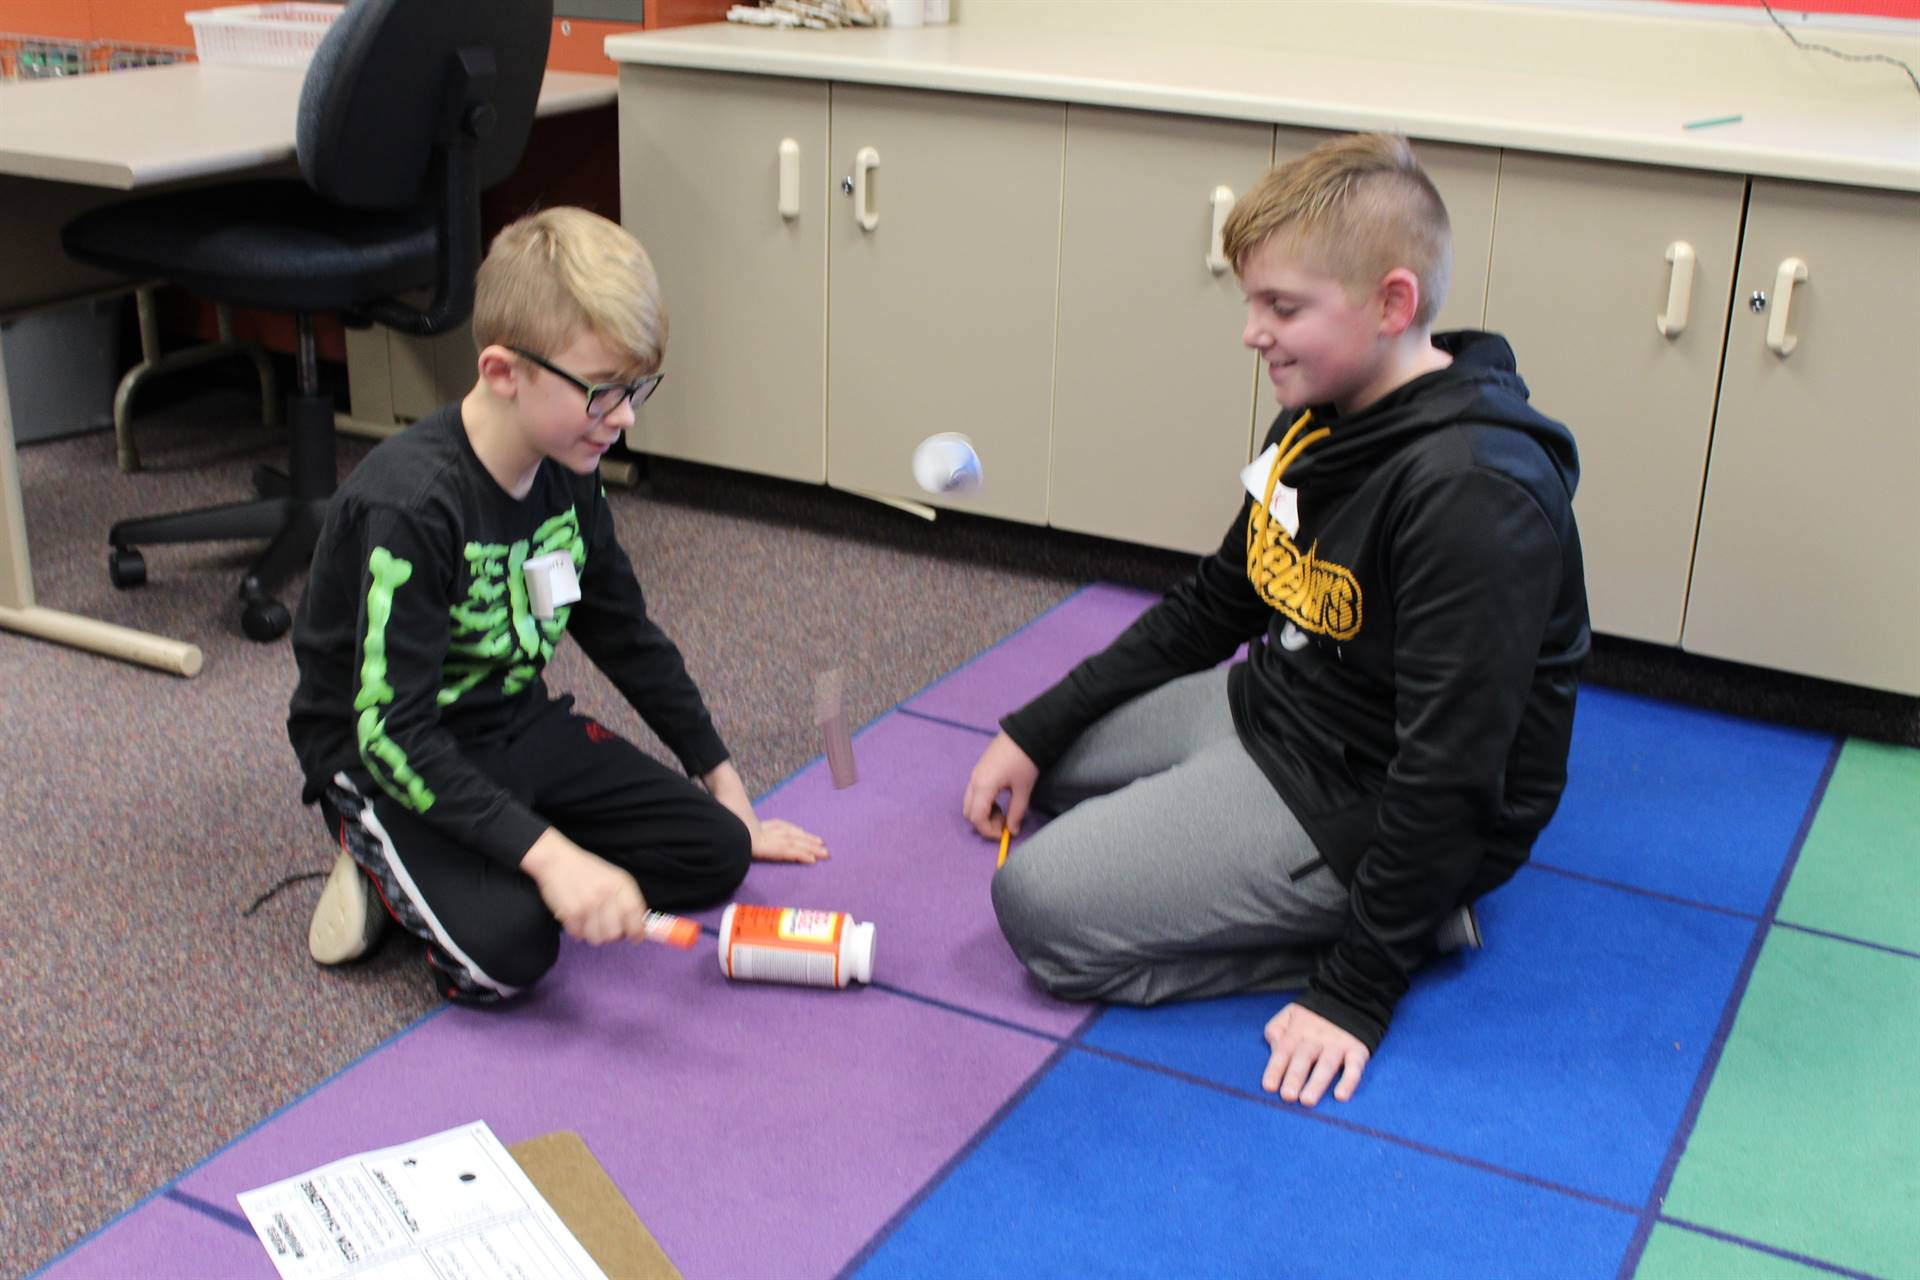 Two students launching something off a fulcrum